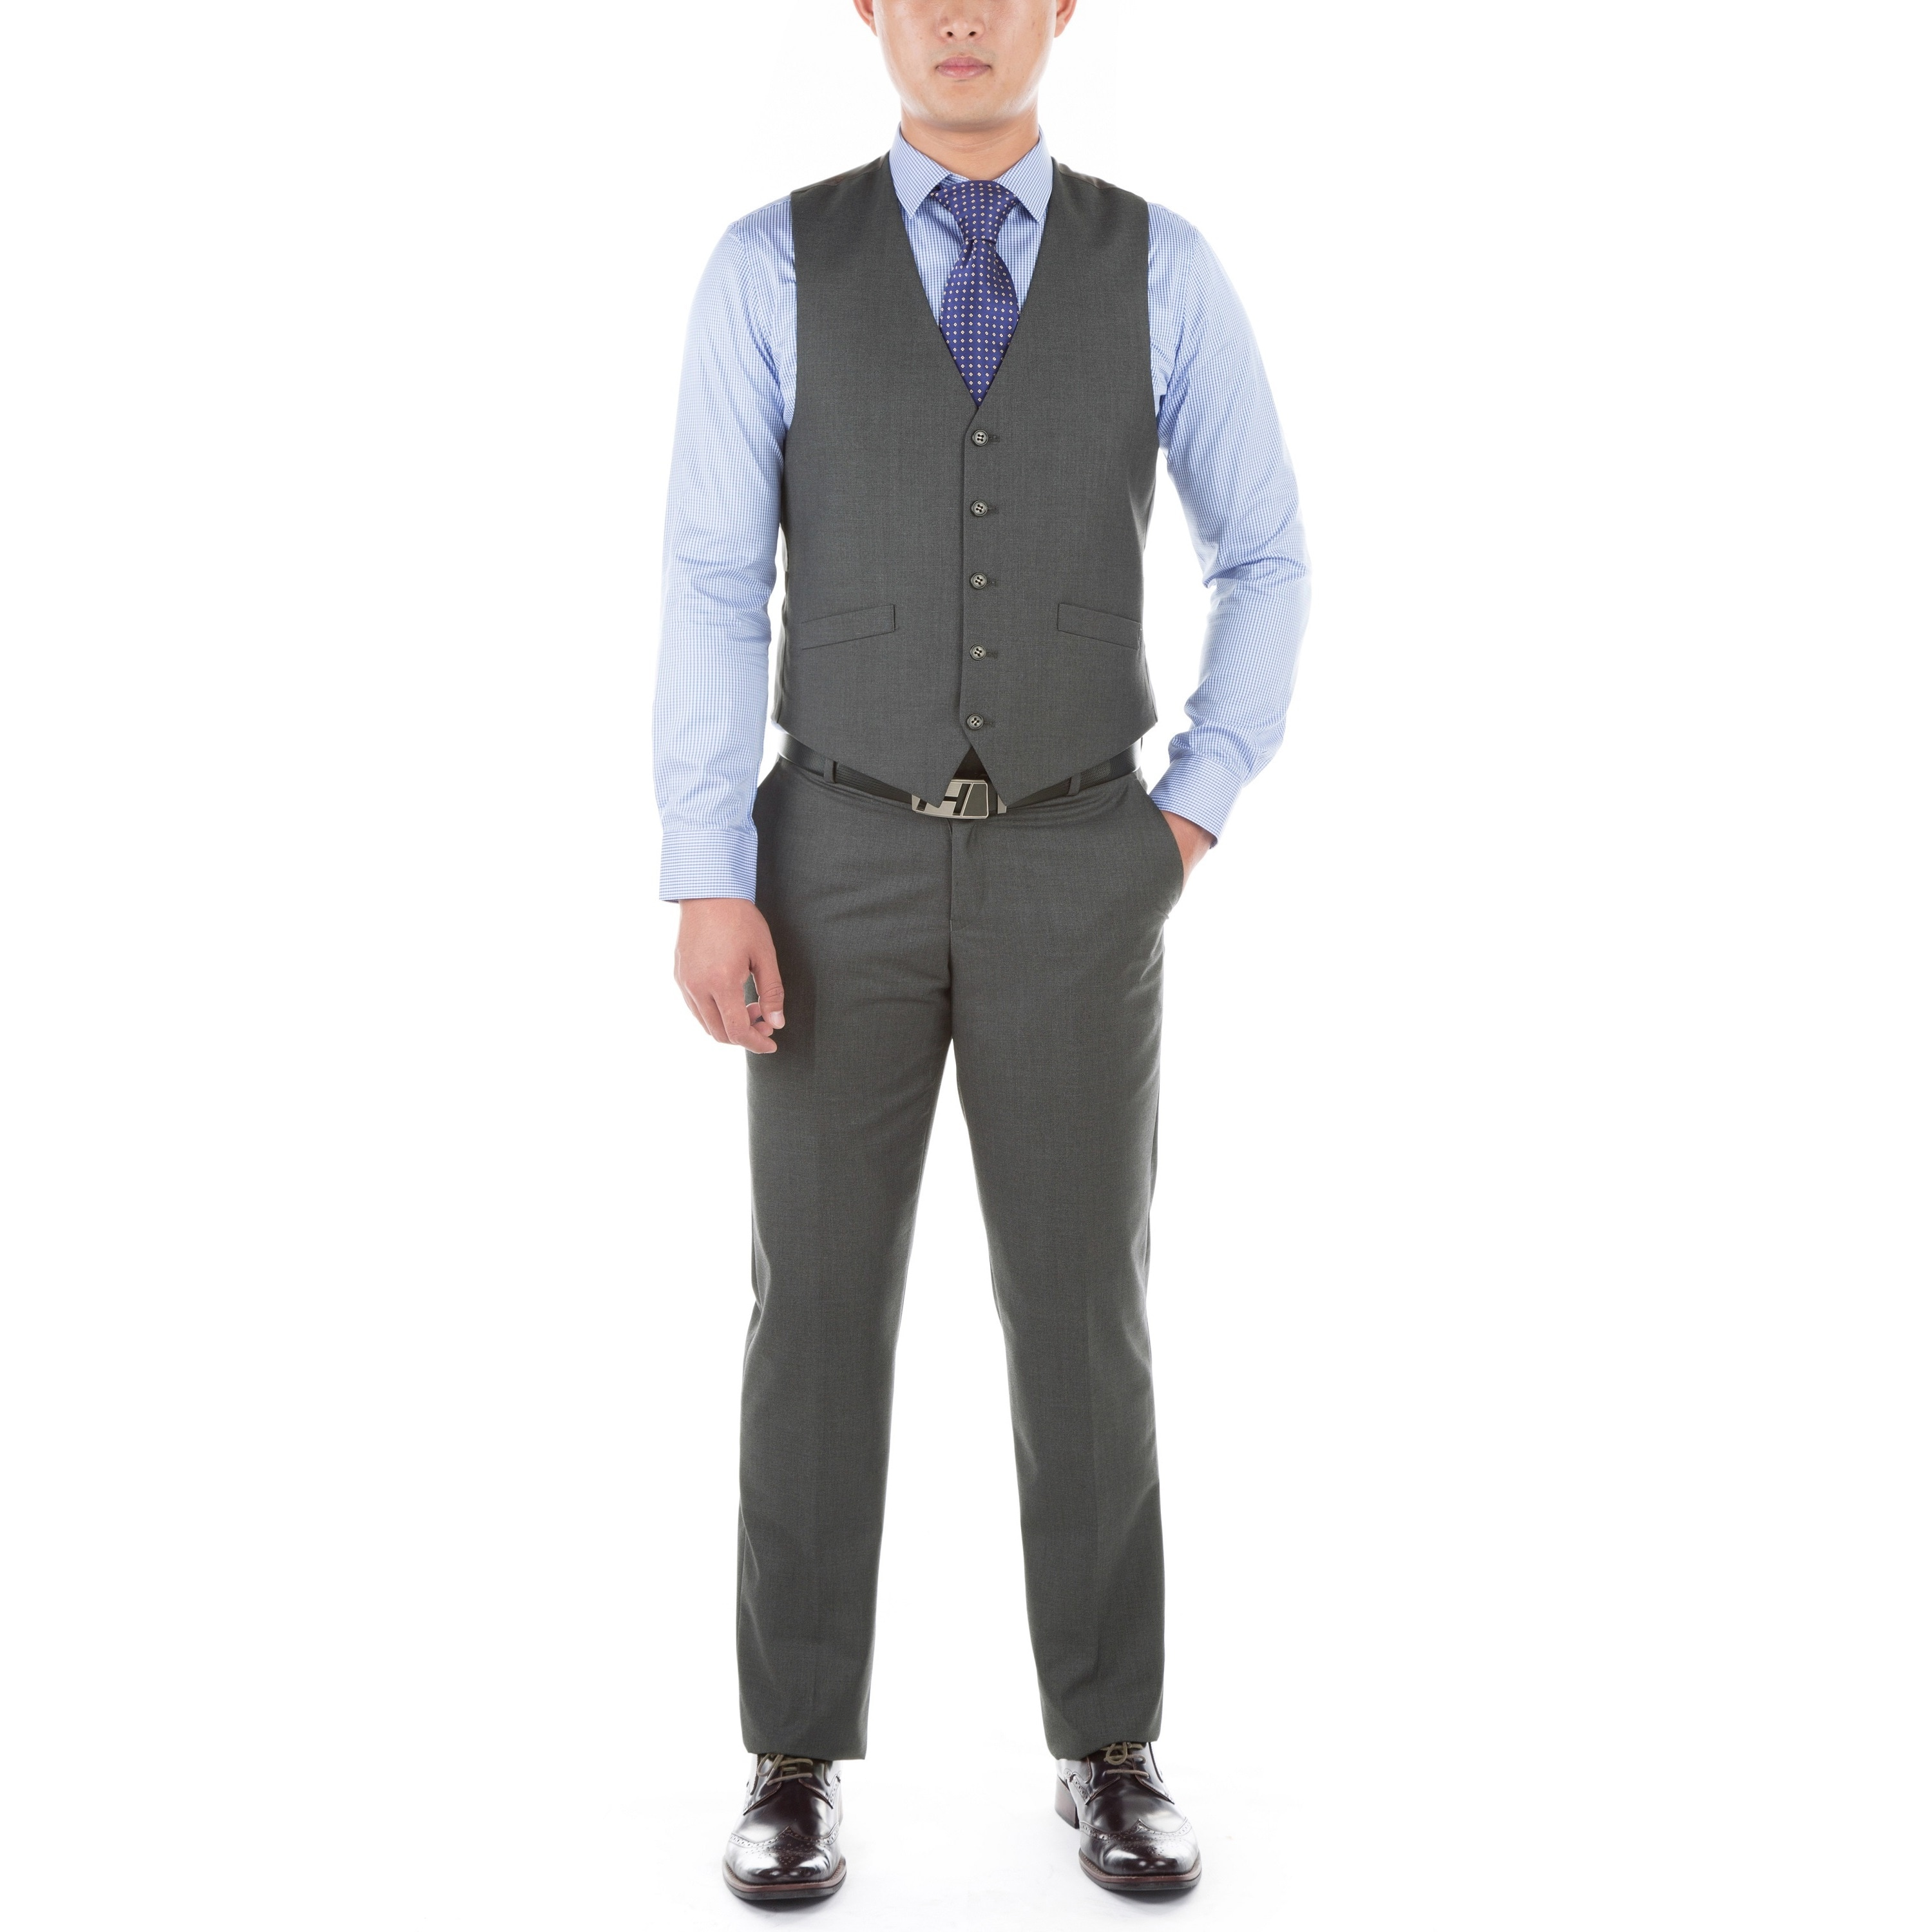 2f232129fe6 Shop Verno Men s Grey Polyester Medium 3-piece Slim-fit Suit - Free  Shipping Today - Overstock - 13621013